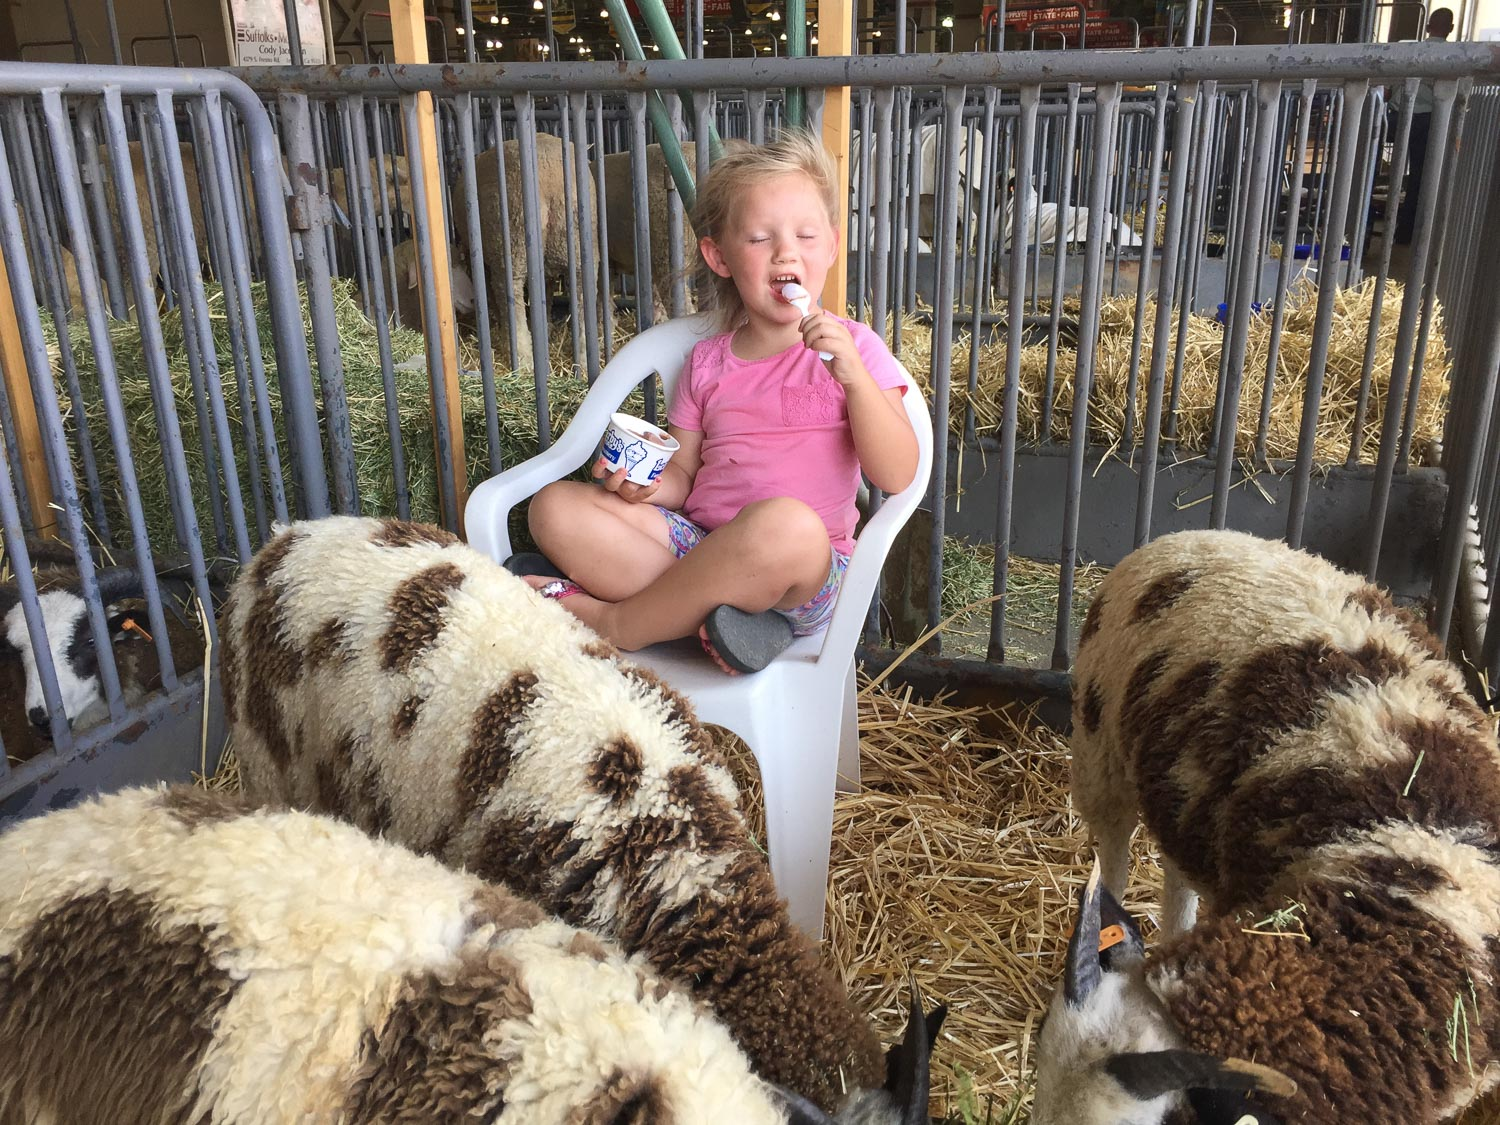 Eating ice cream in the sheep pen at California State Fair.